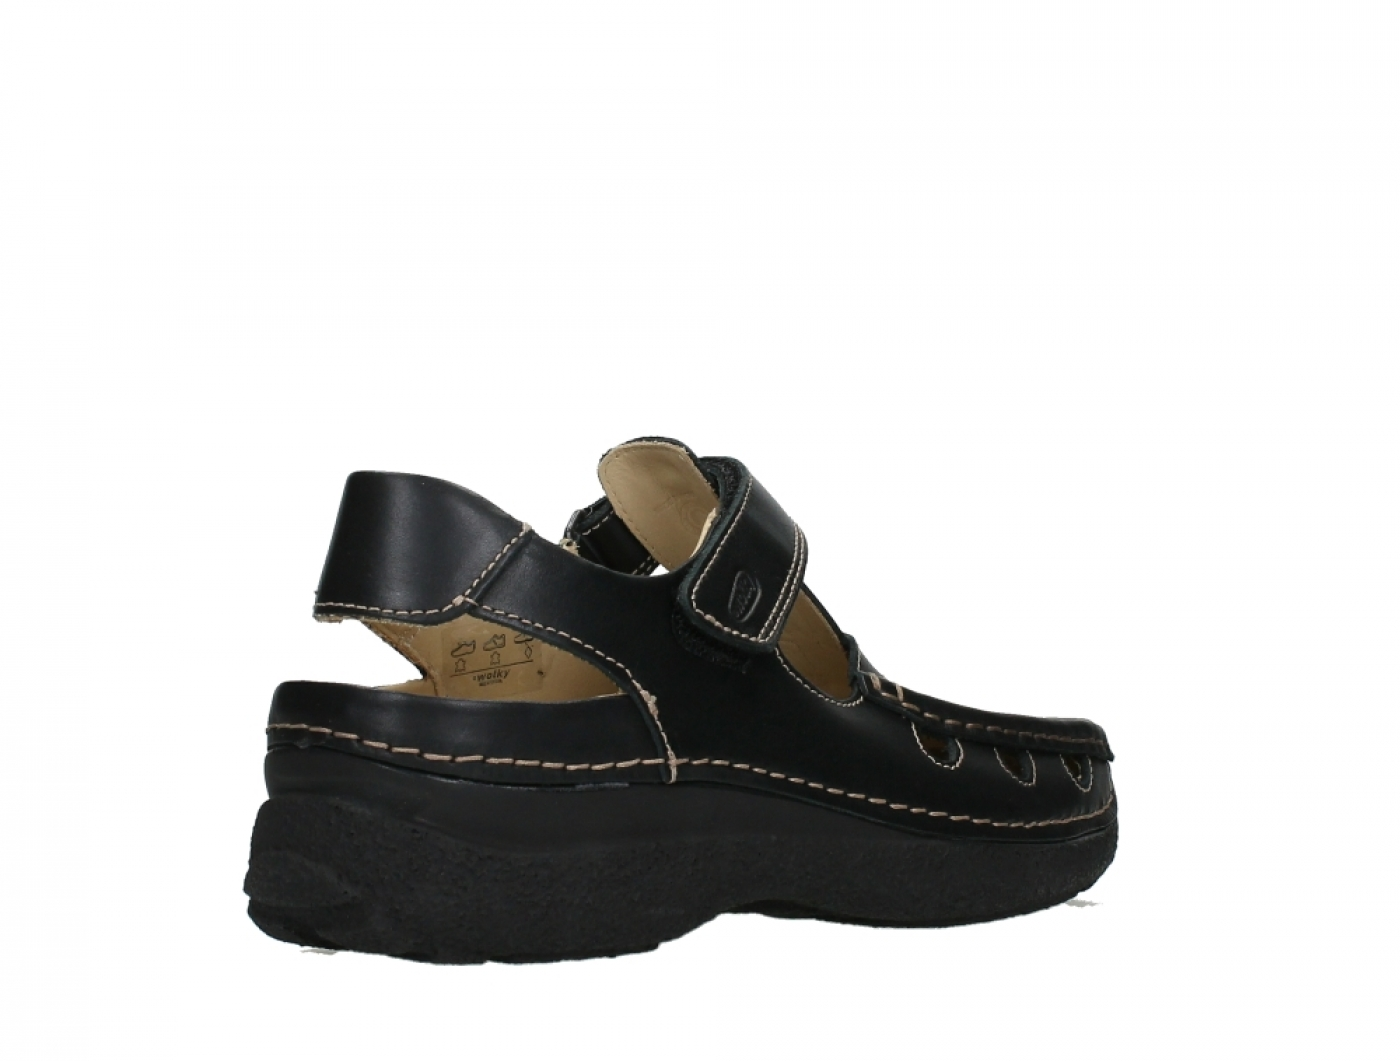 Wolky Women S Shoes